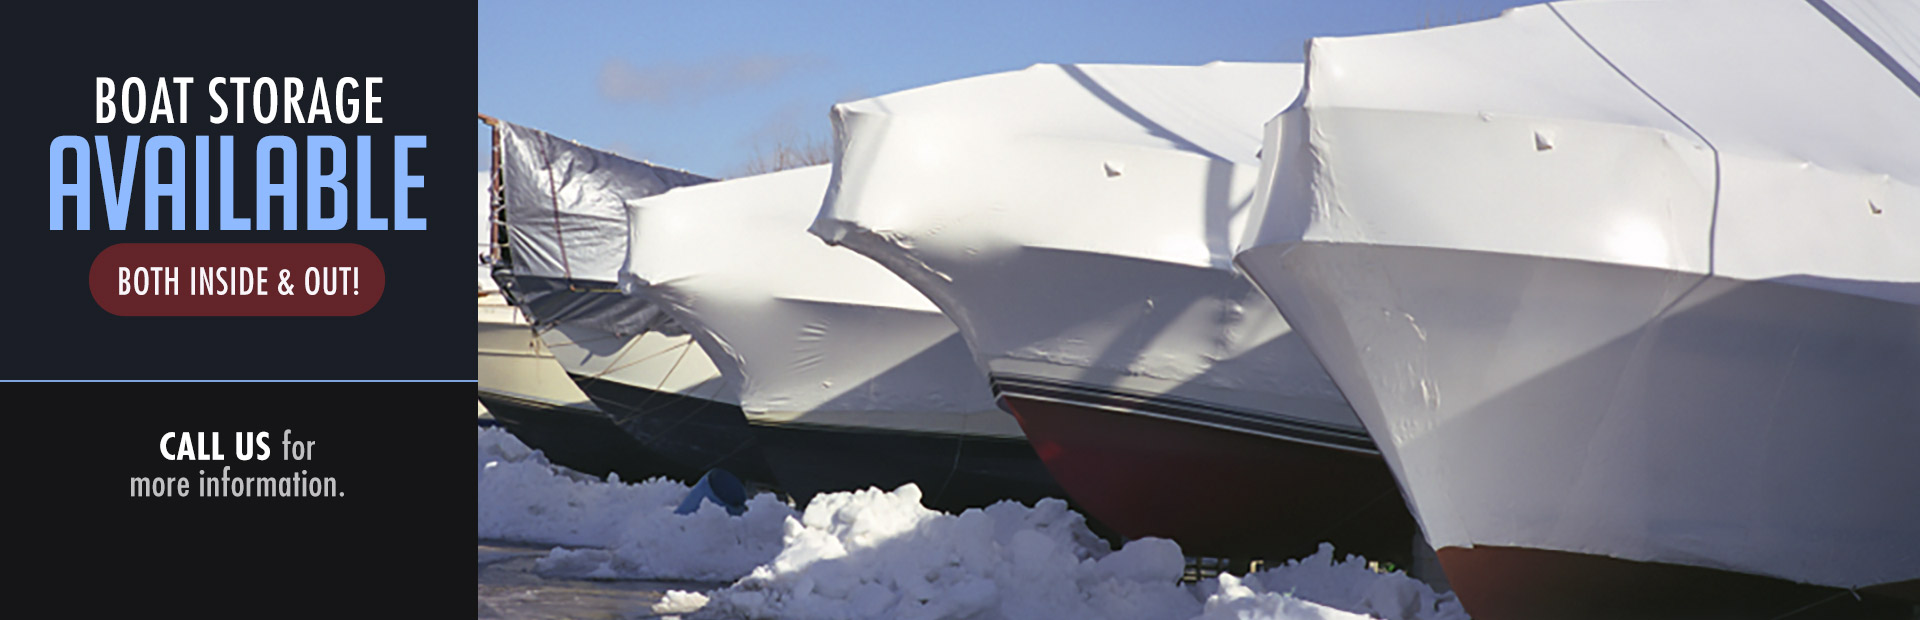 Boat storage is available. Call us for more information.